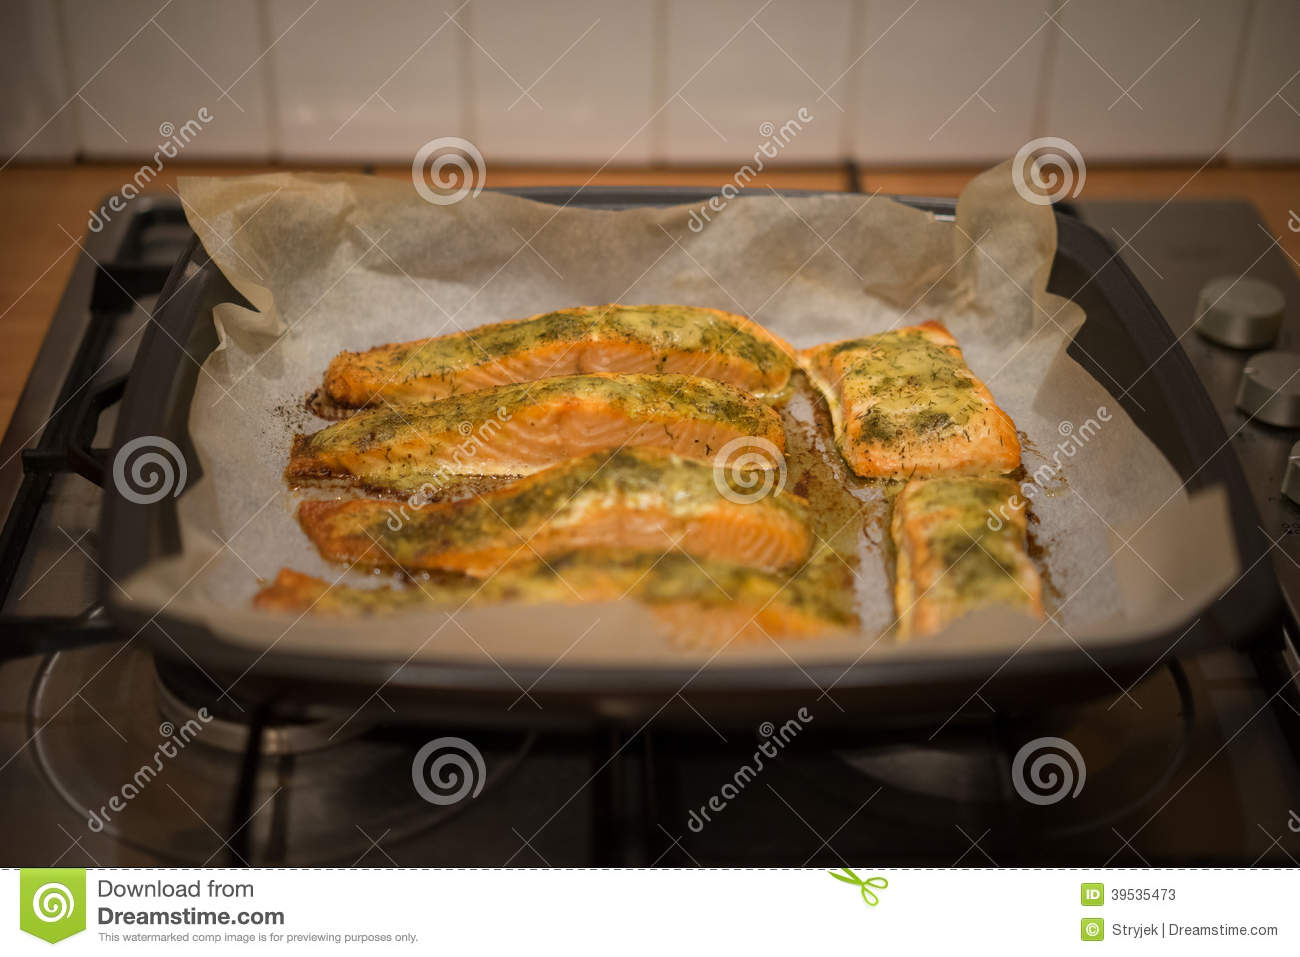 Preparing baked fish in a roasting pan stock photo image for Fish in foil in oven